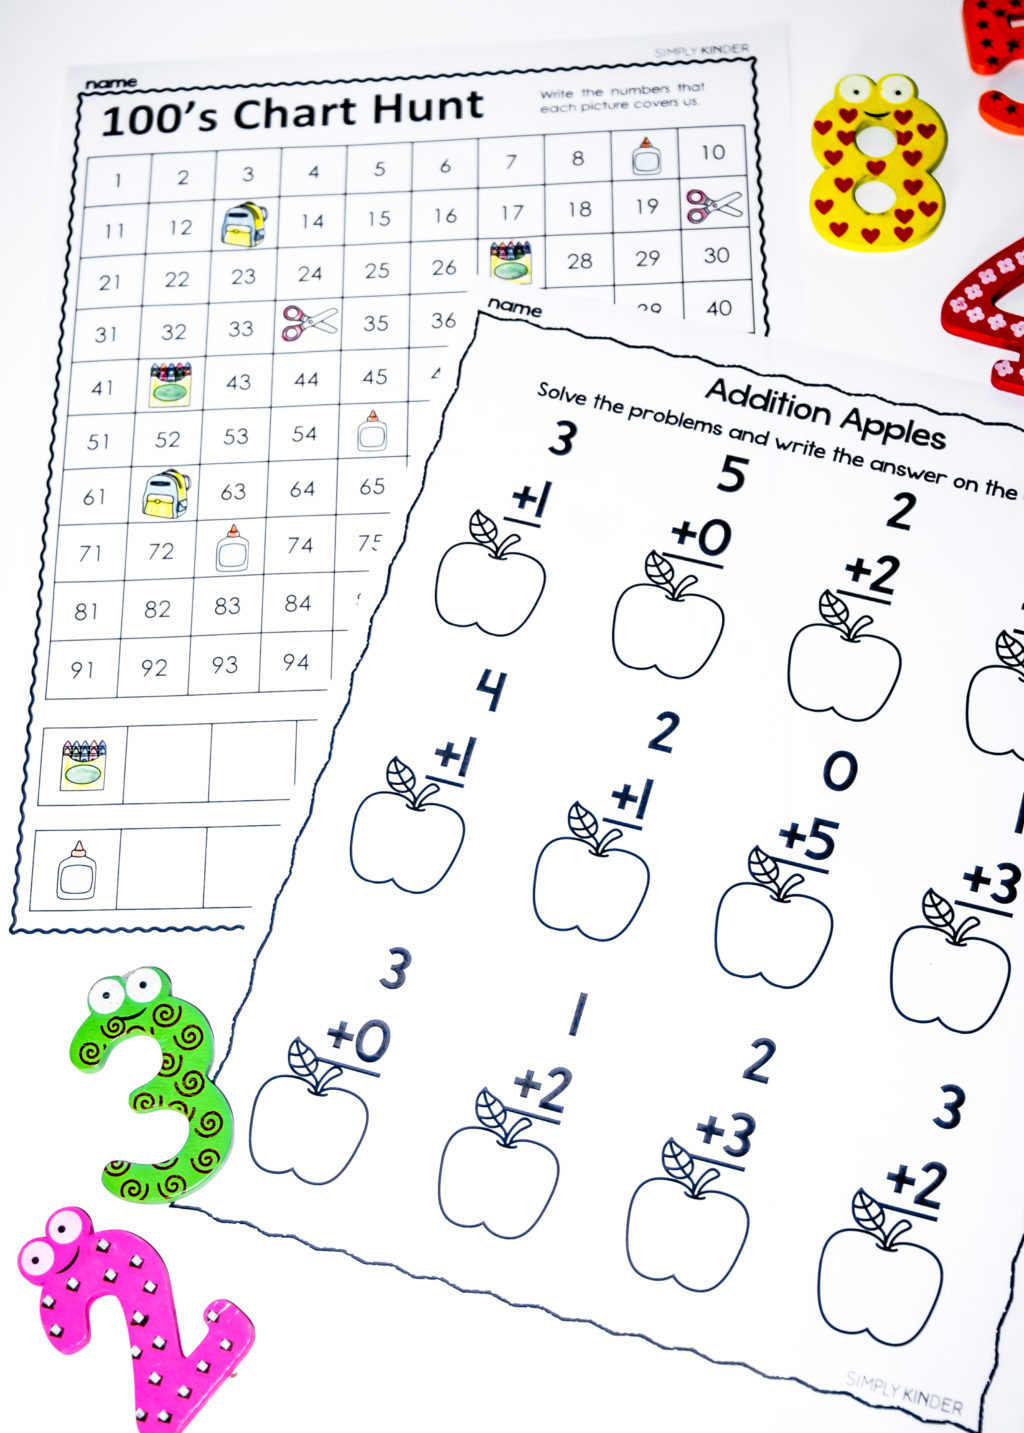 Free Printable social Stories Worksheets Worksheet Free Kindergartenies Games Printable for Kids